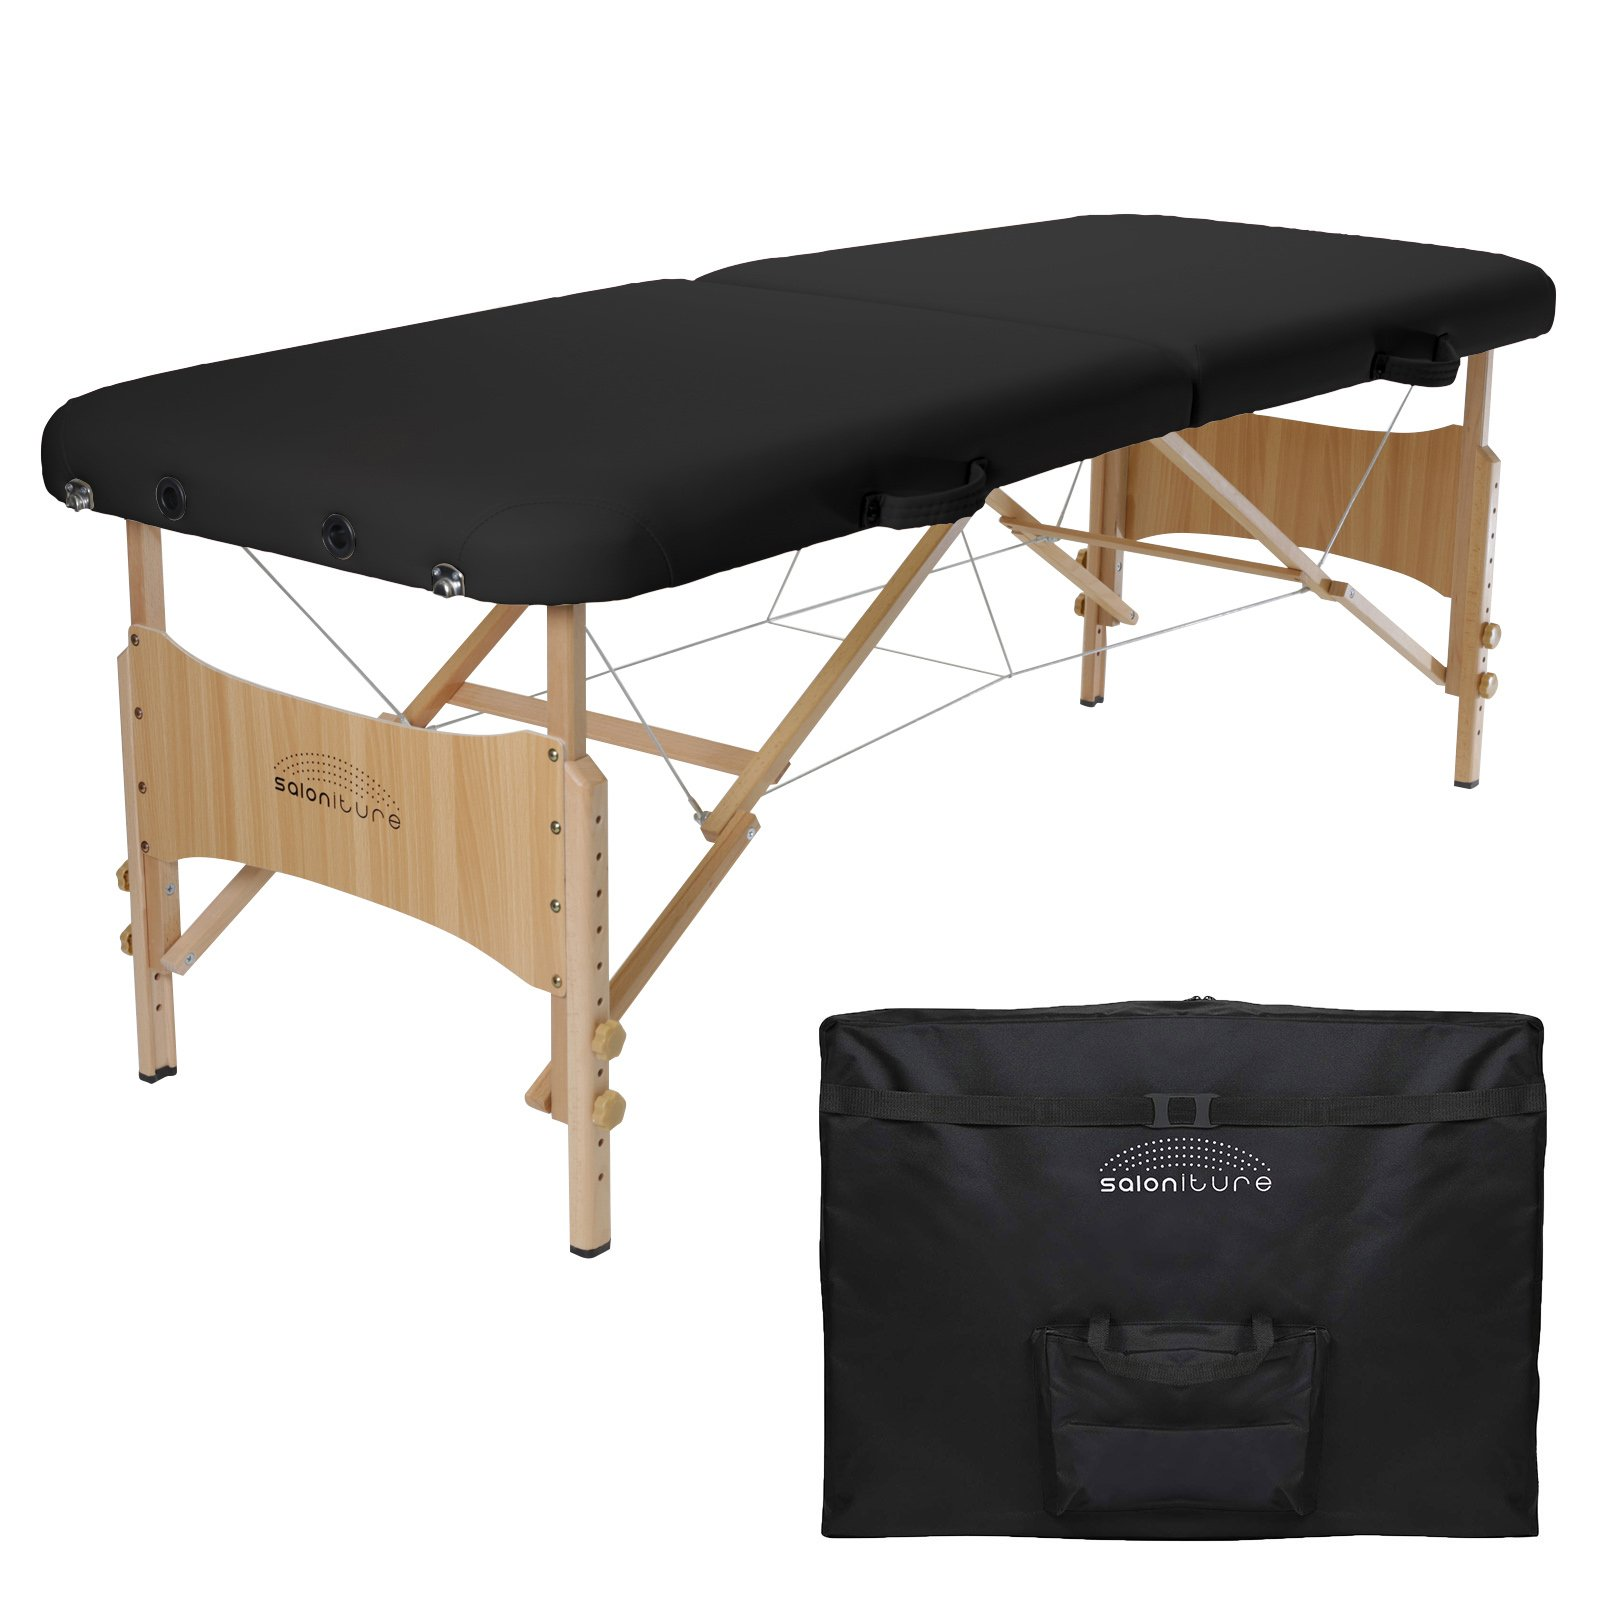 Saloniture Basic Portable Folding Massage